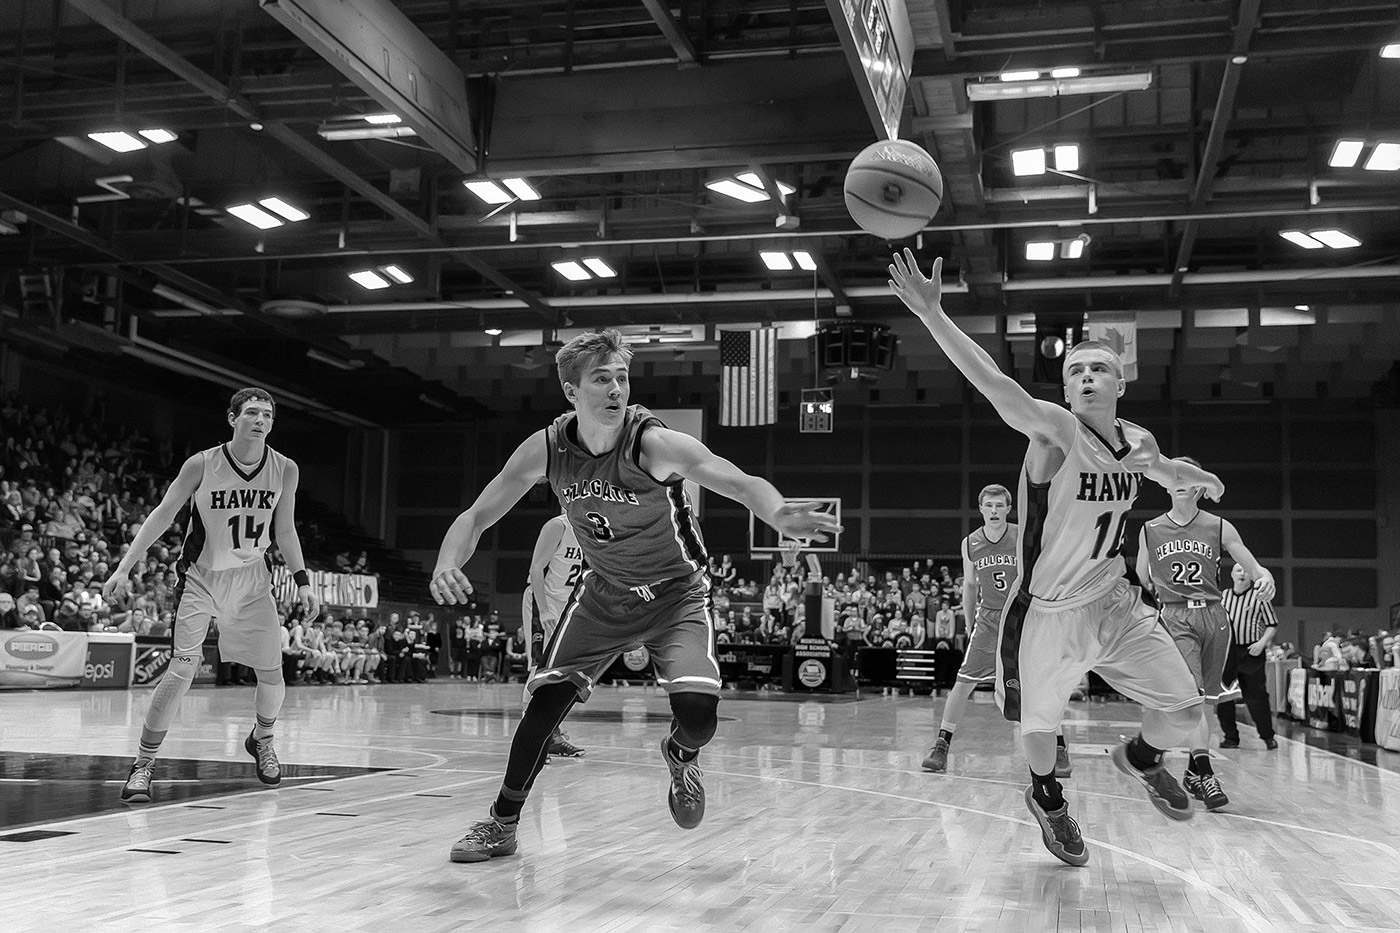 Montana High School AA Men's Basketball